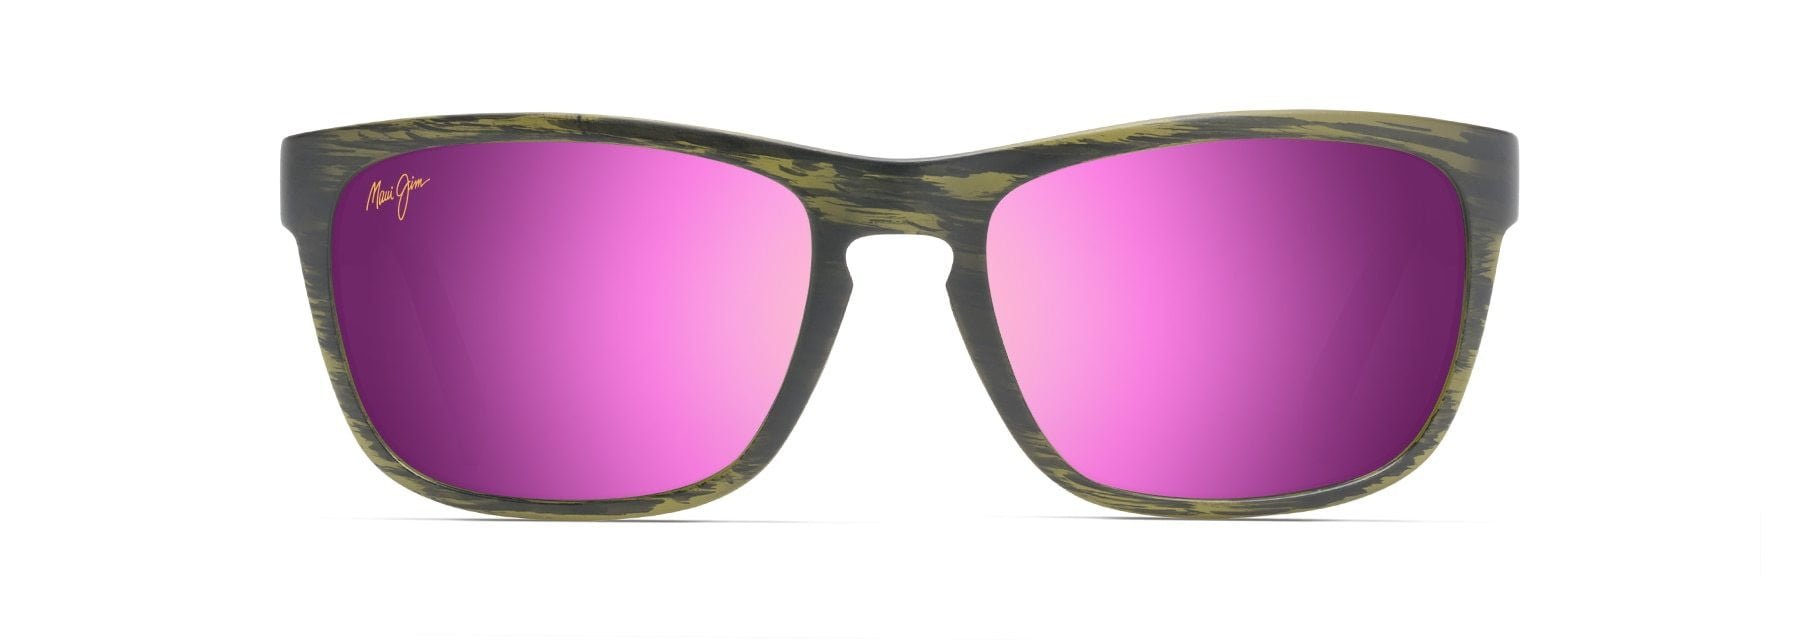 MyMaui South Swell MM755-031 Sunglasses